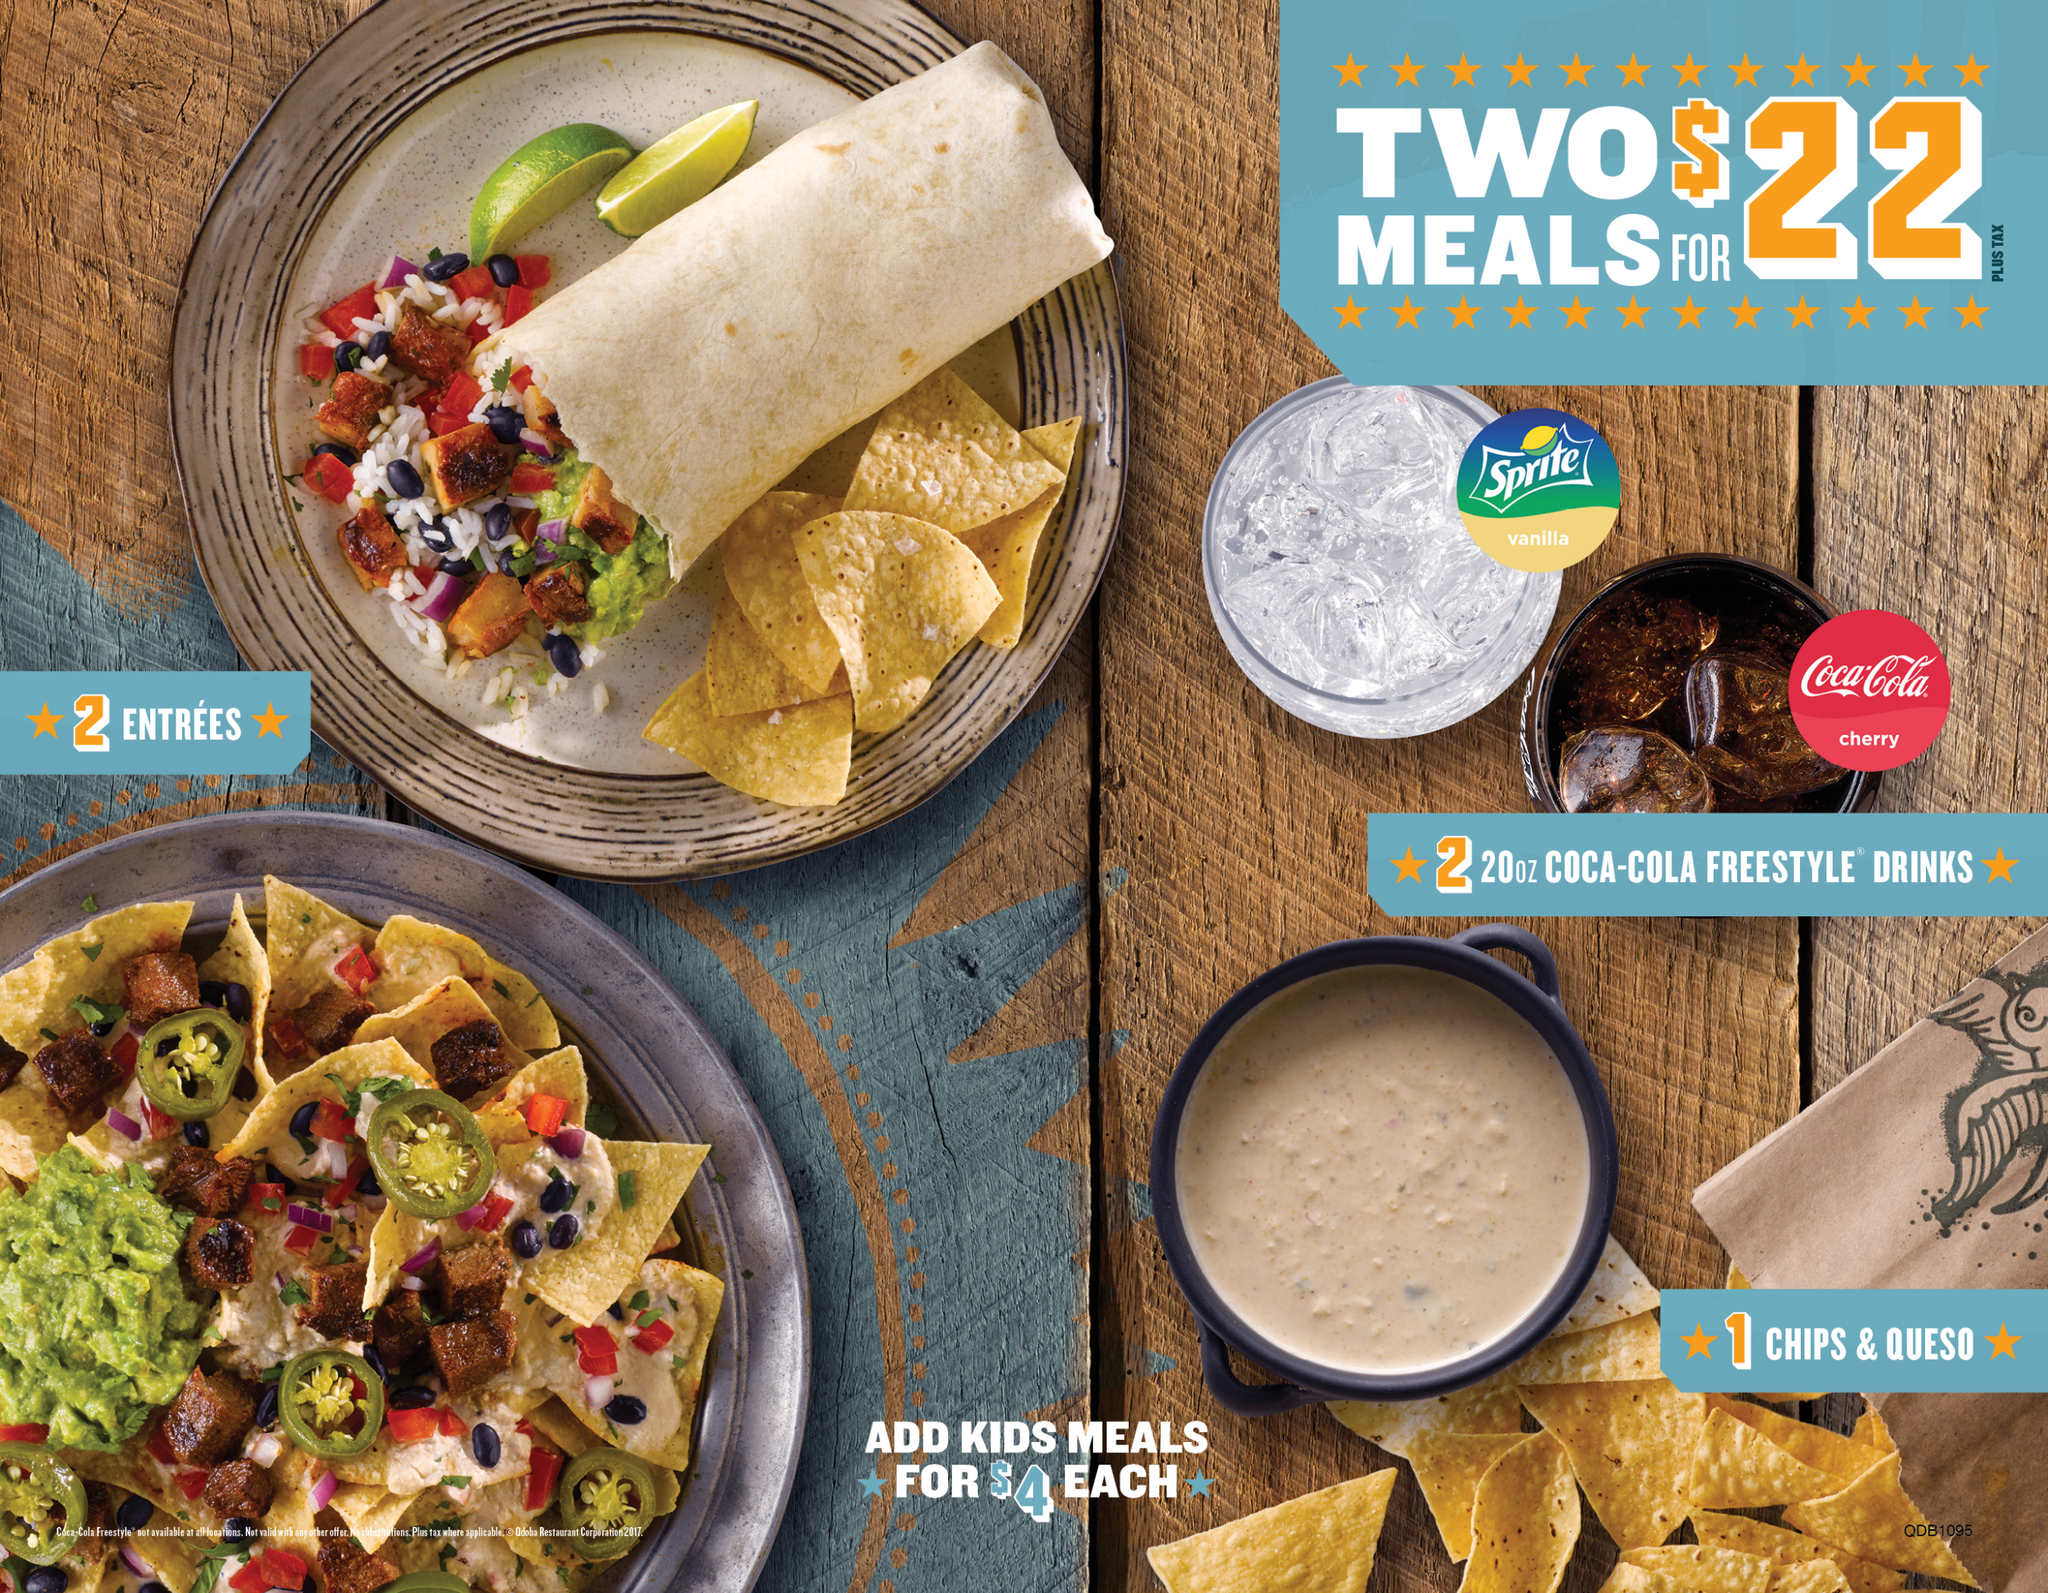 Dining Out is a Breeze with Qdoba's New 2 for $22 Deal